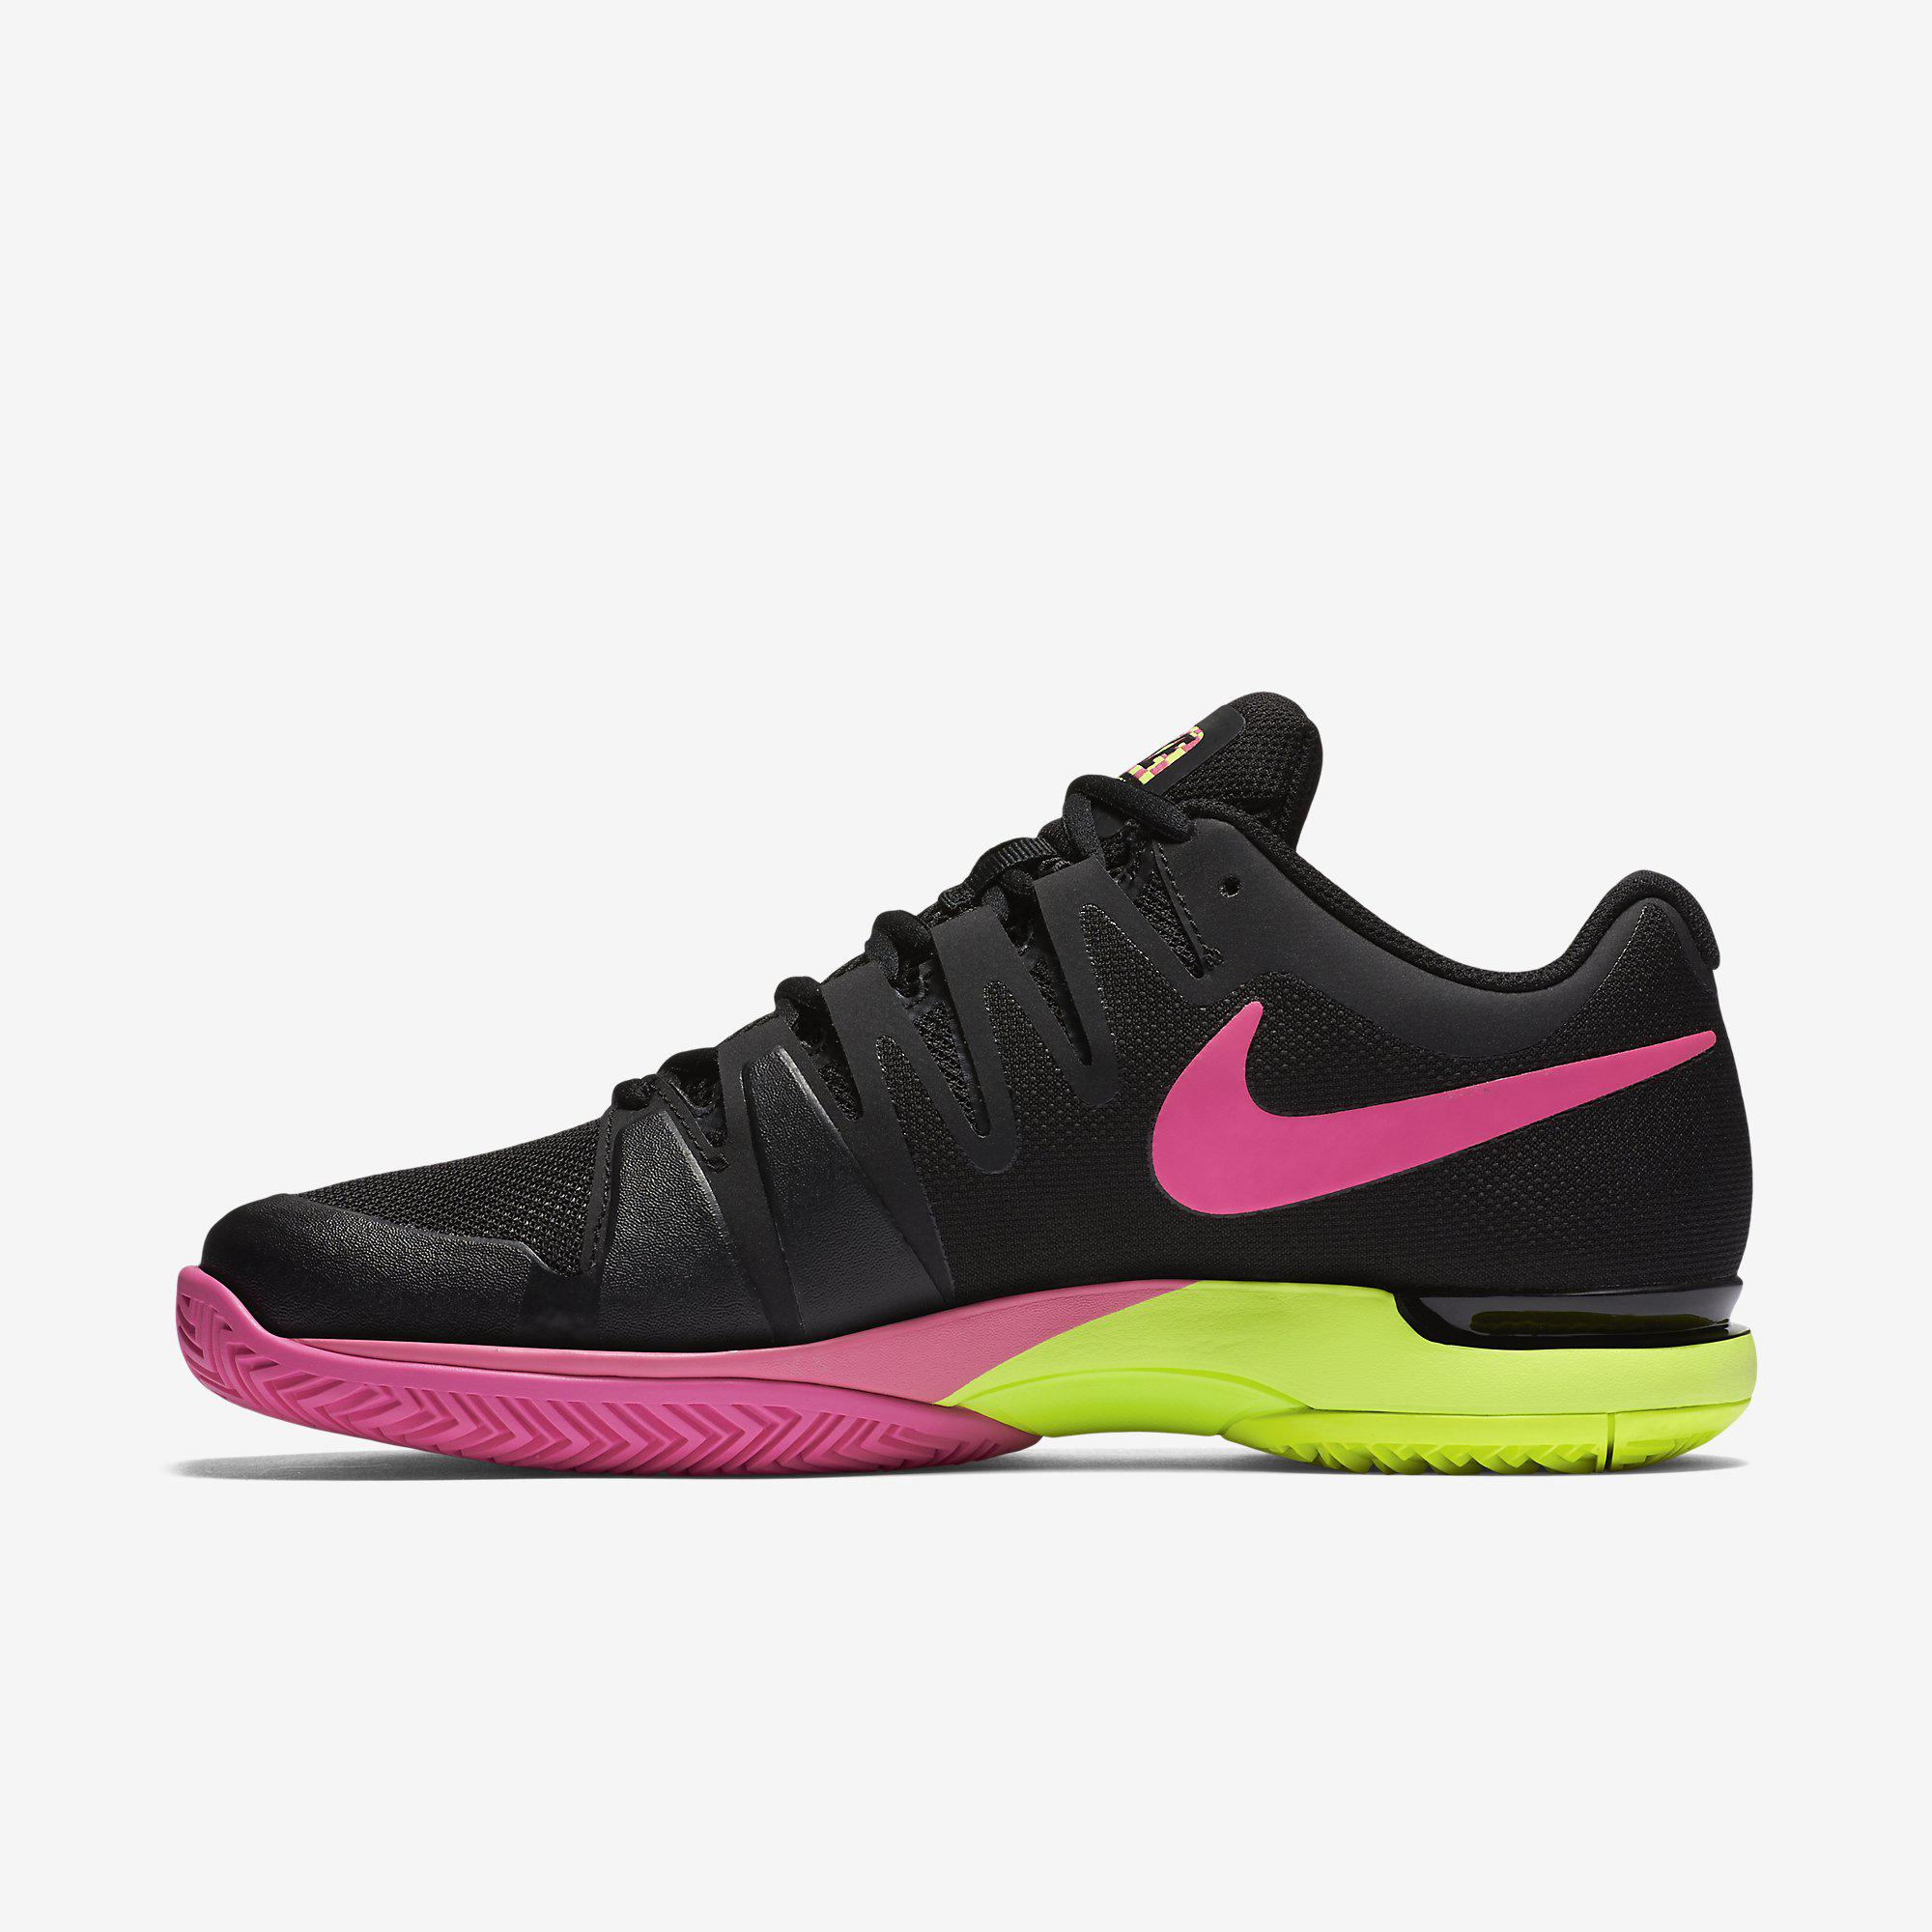 Nike Womens Zoom Vapor 9.5 Tennis Shoes - Black/Volt/Pink ...